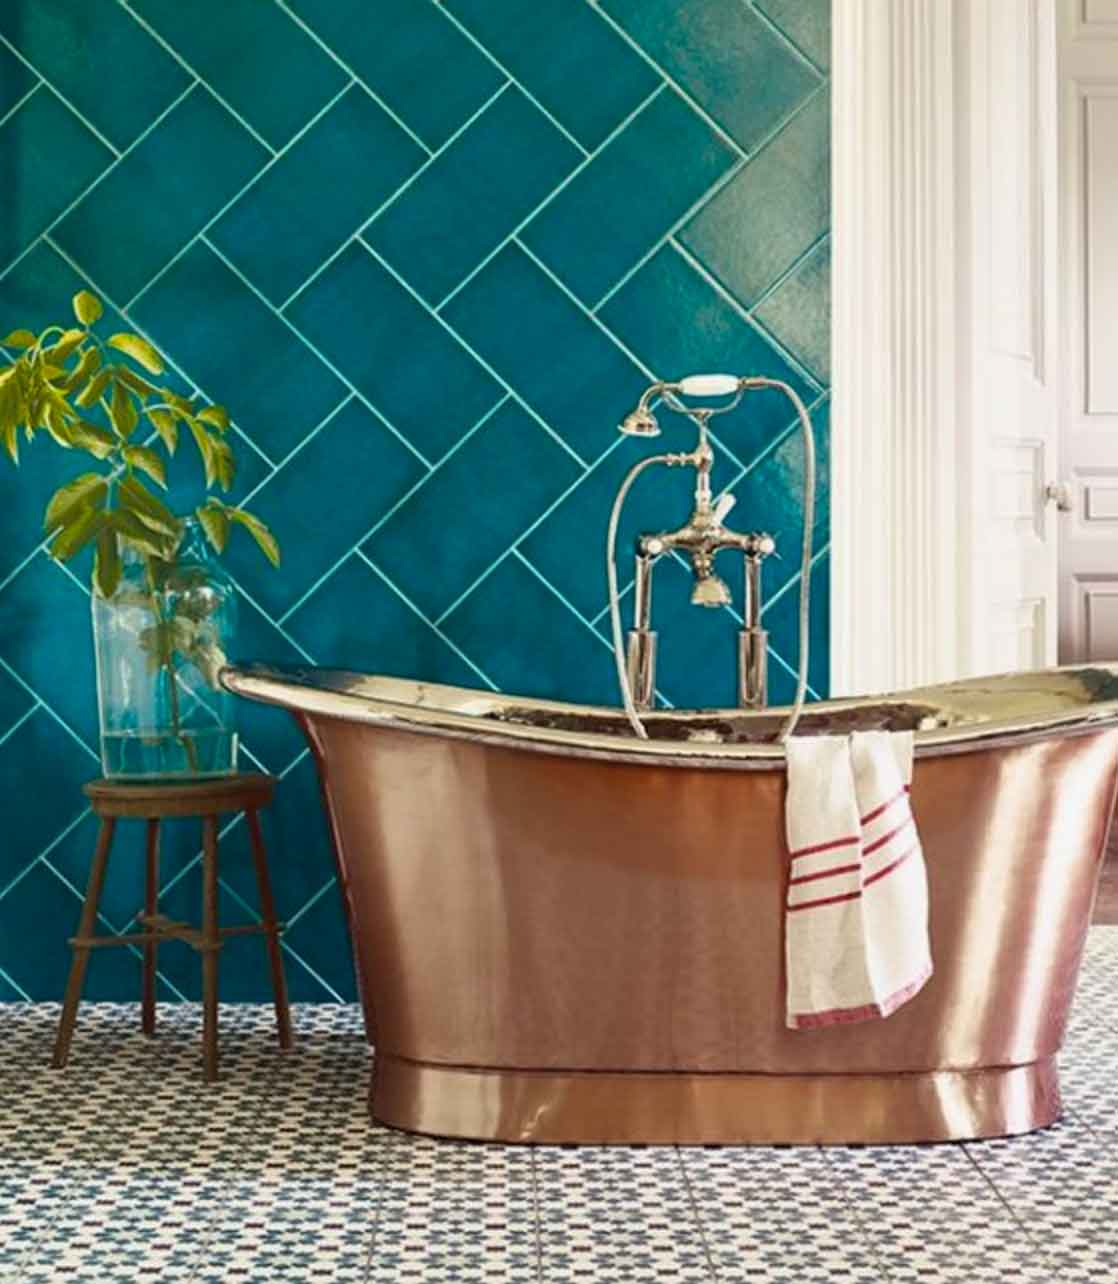 Image of a Luxurious copper bath from Fired Earth in a blog post about bathroom decor ideas by forthefloorandmore.com